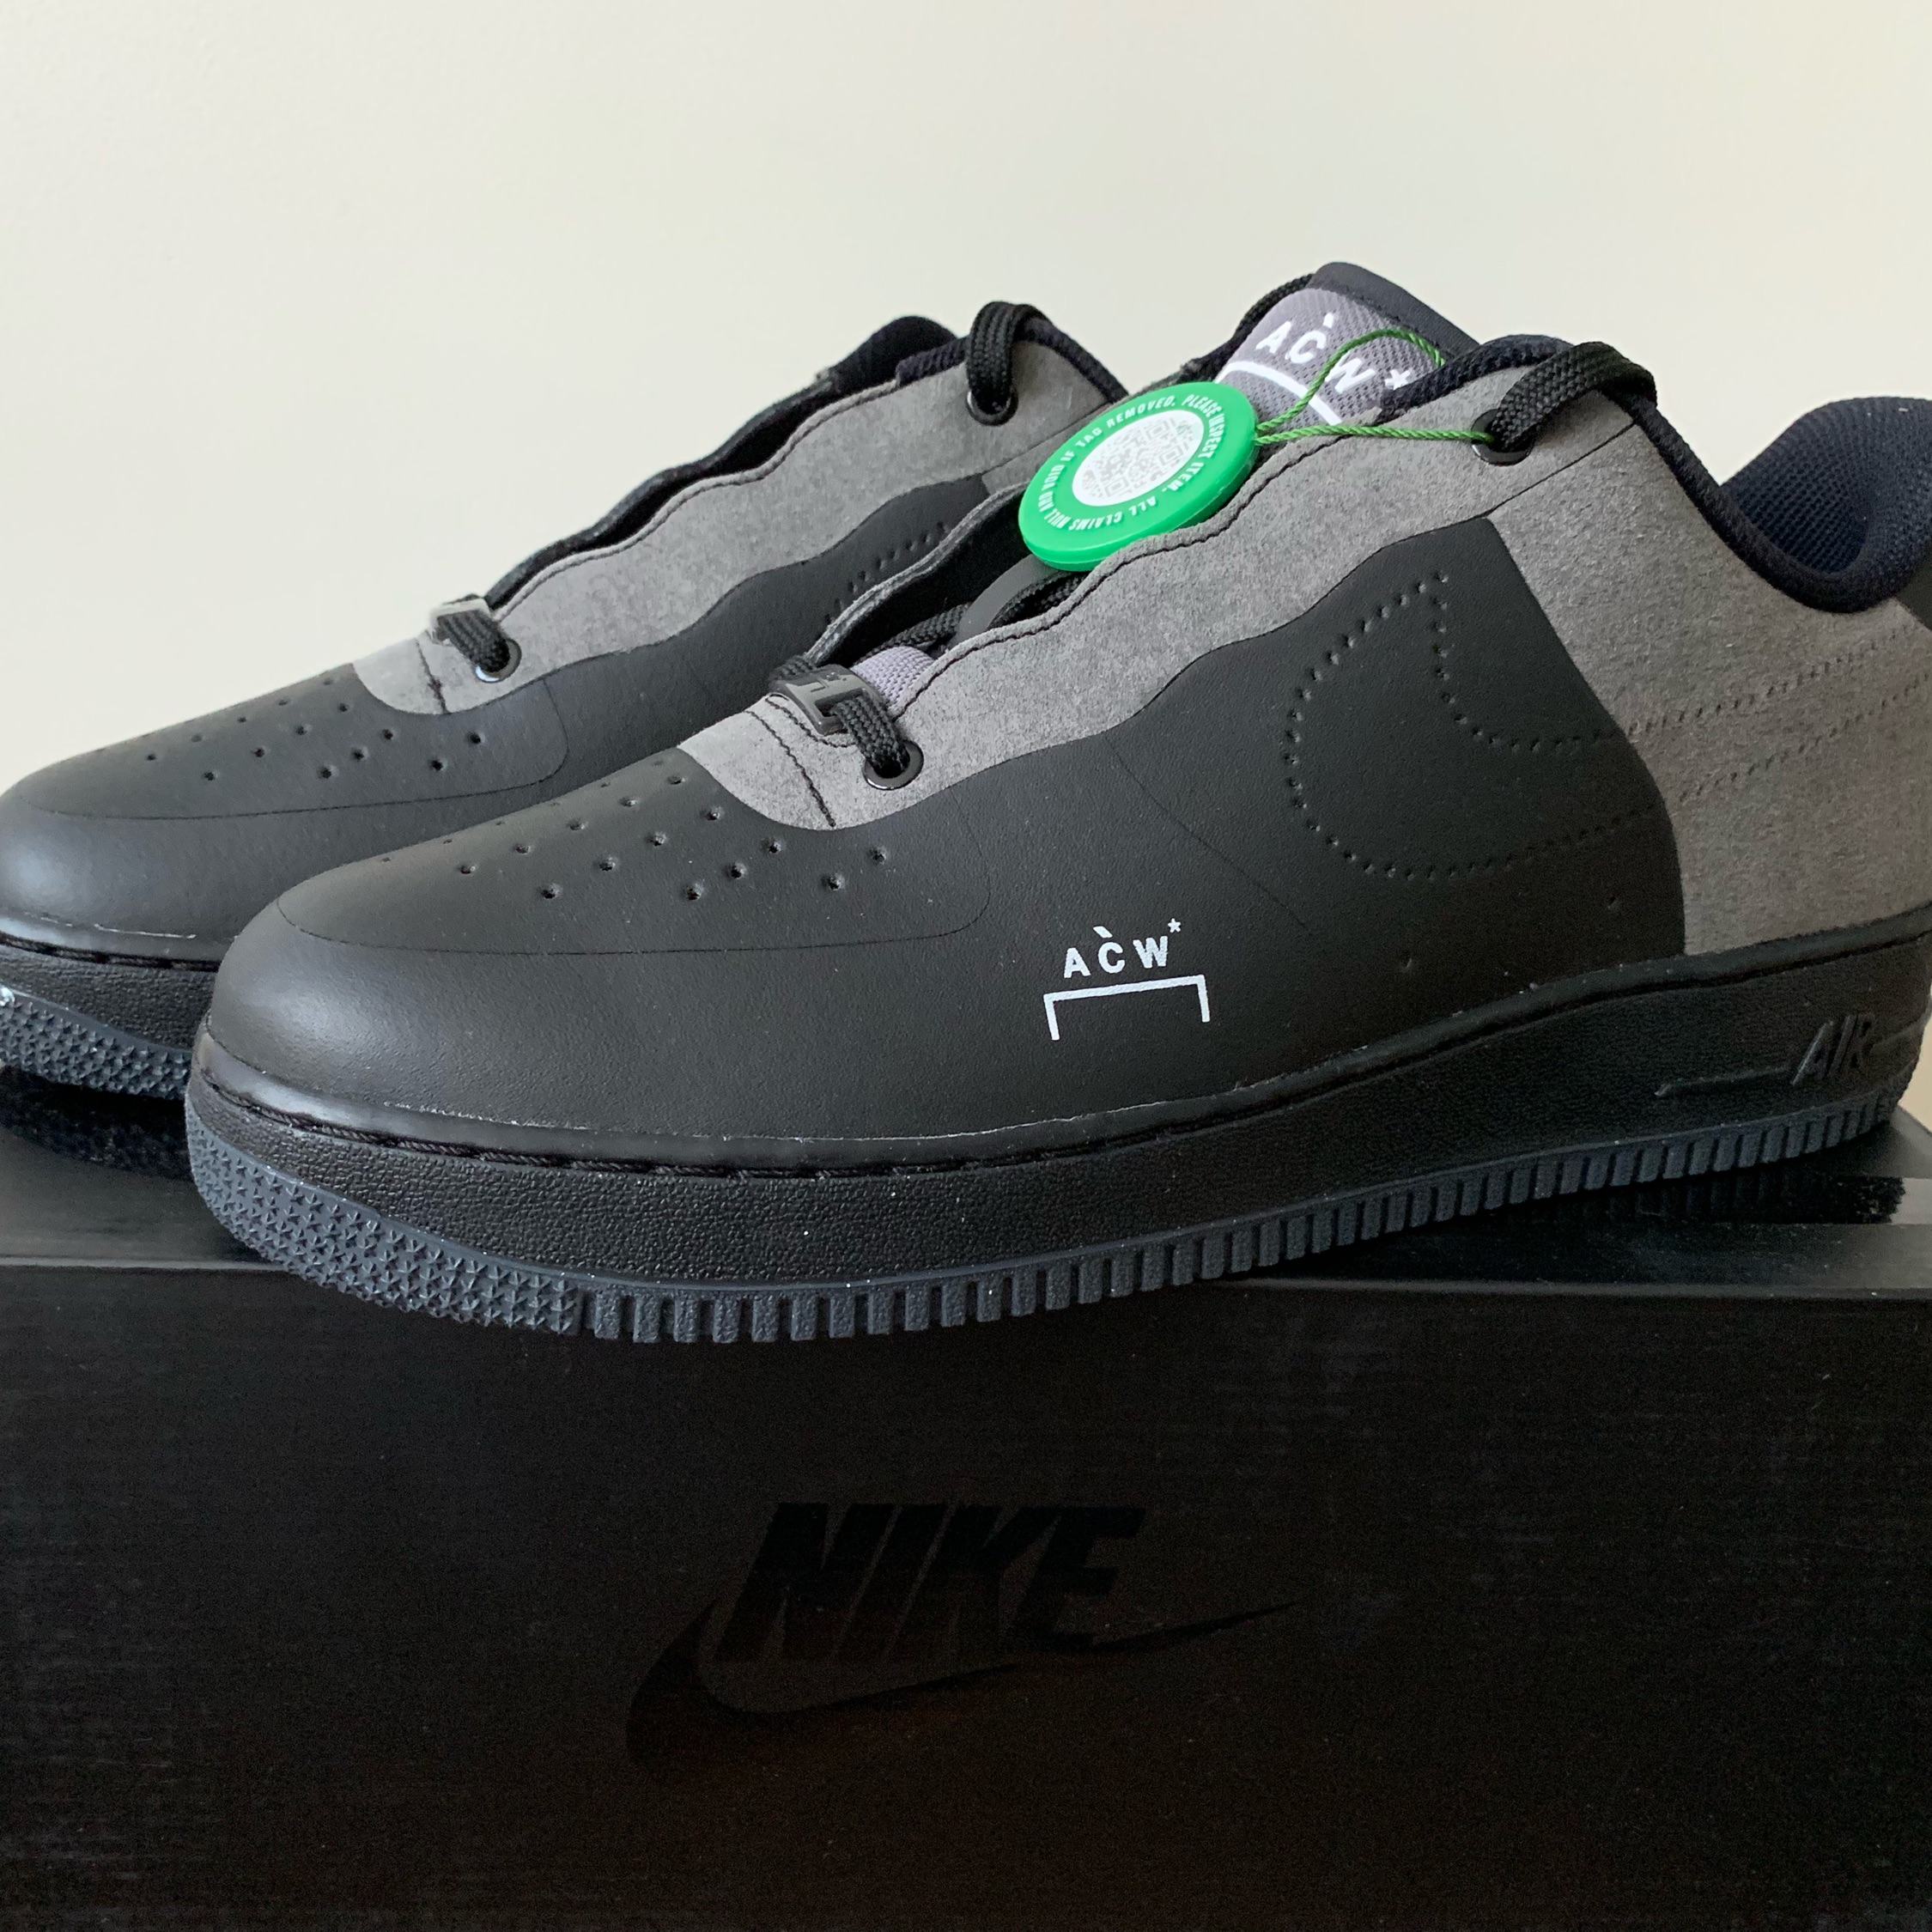 acw air force 1 stockx